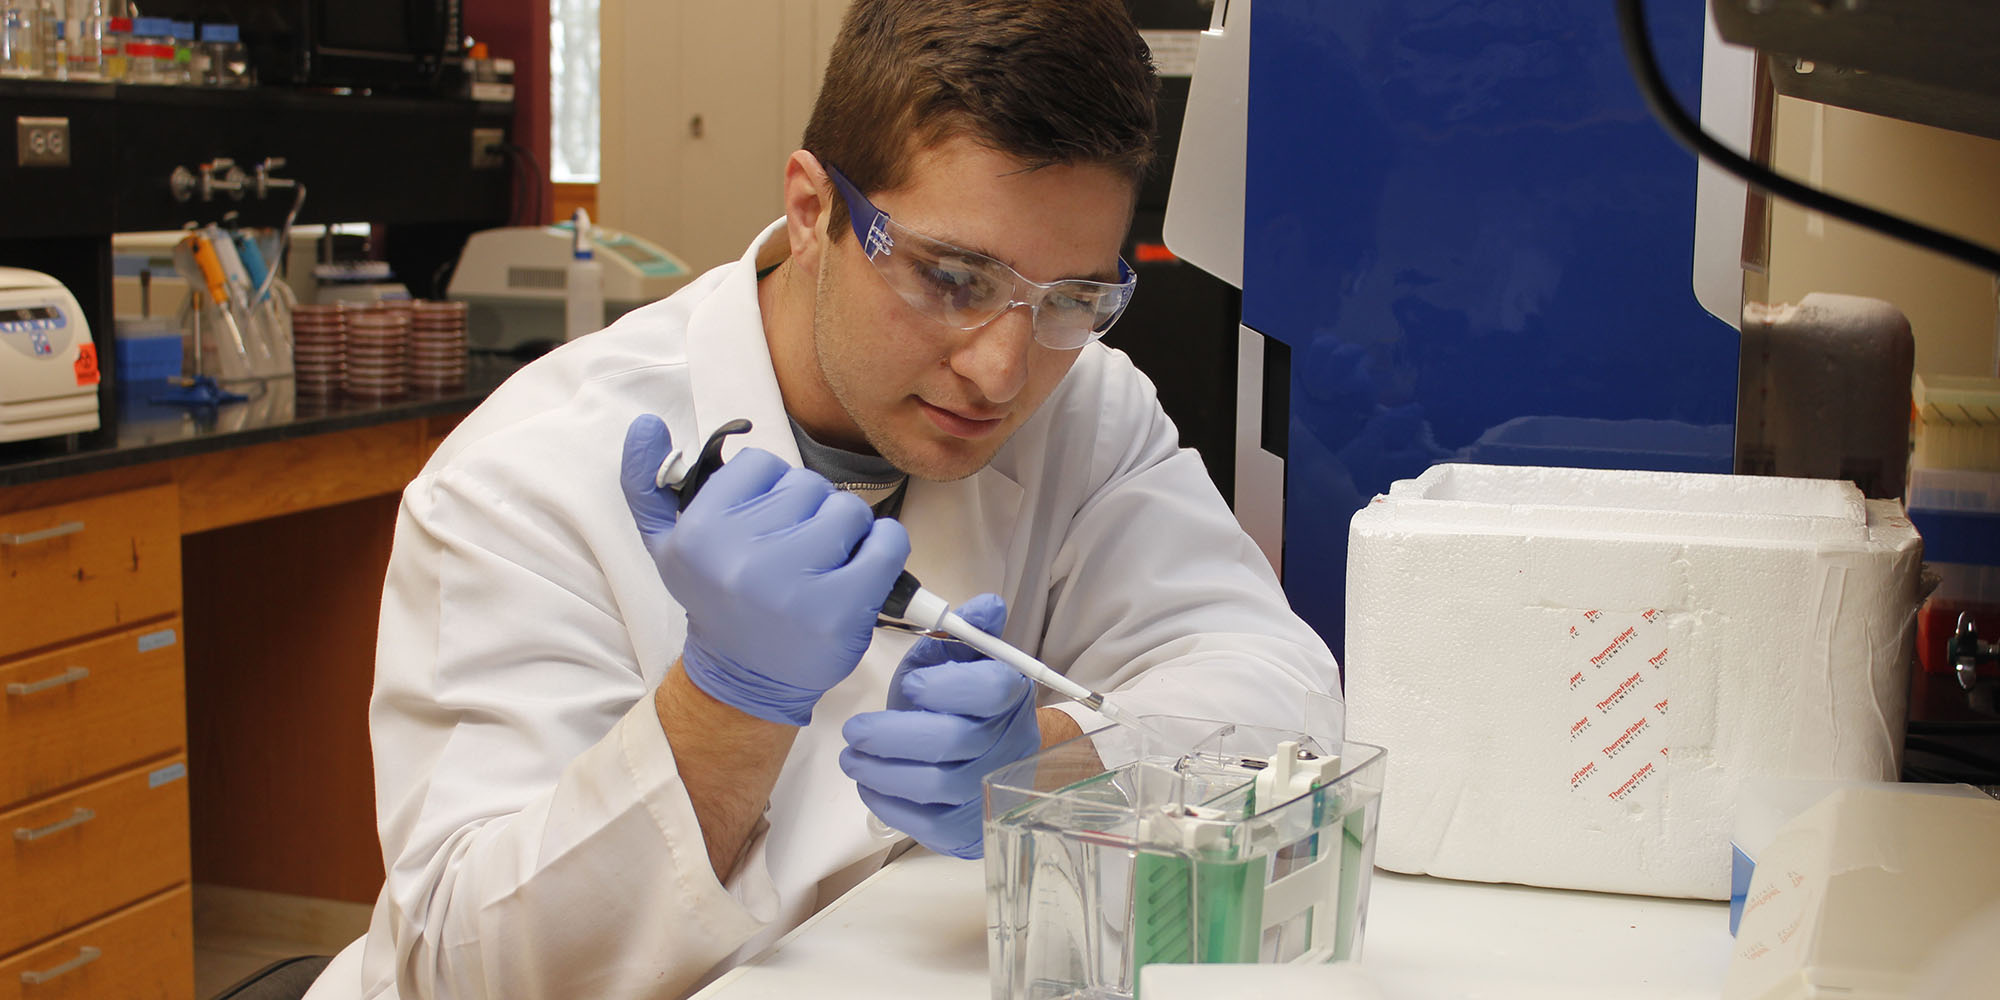 Graham Redweik working in a research lab